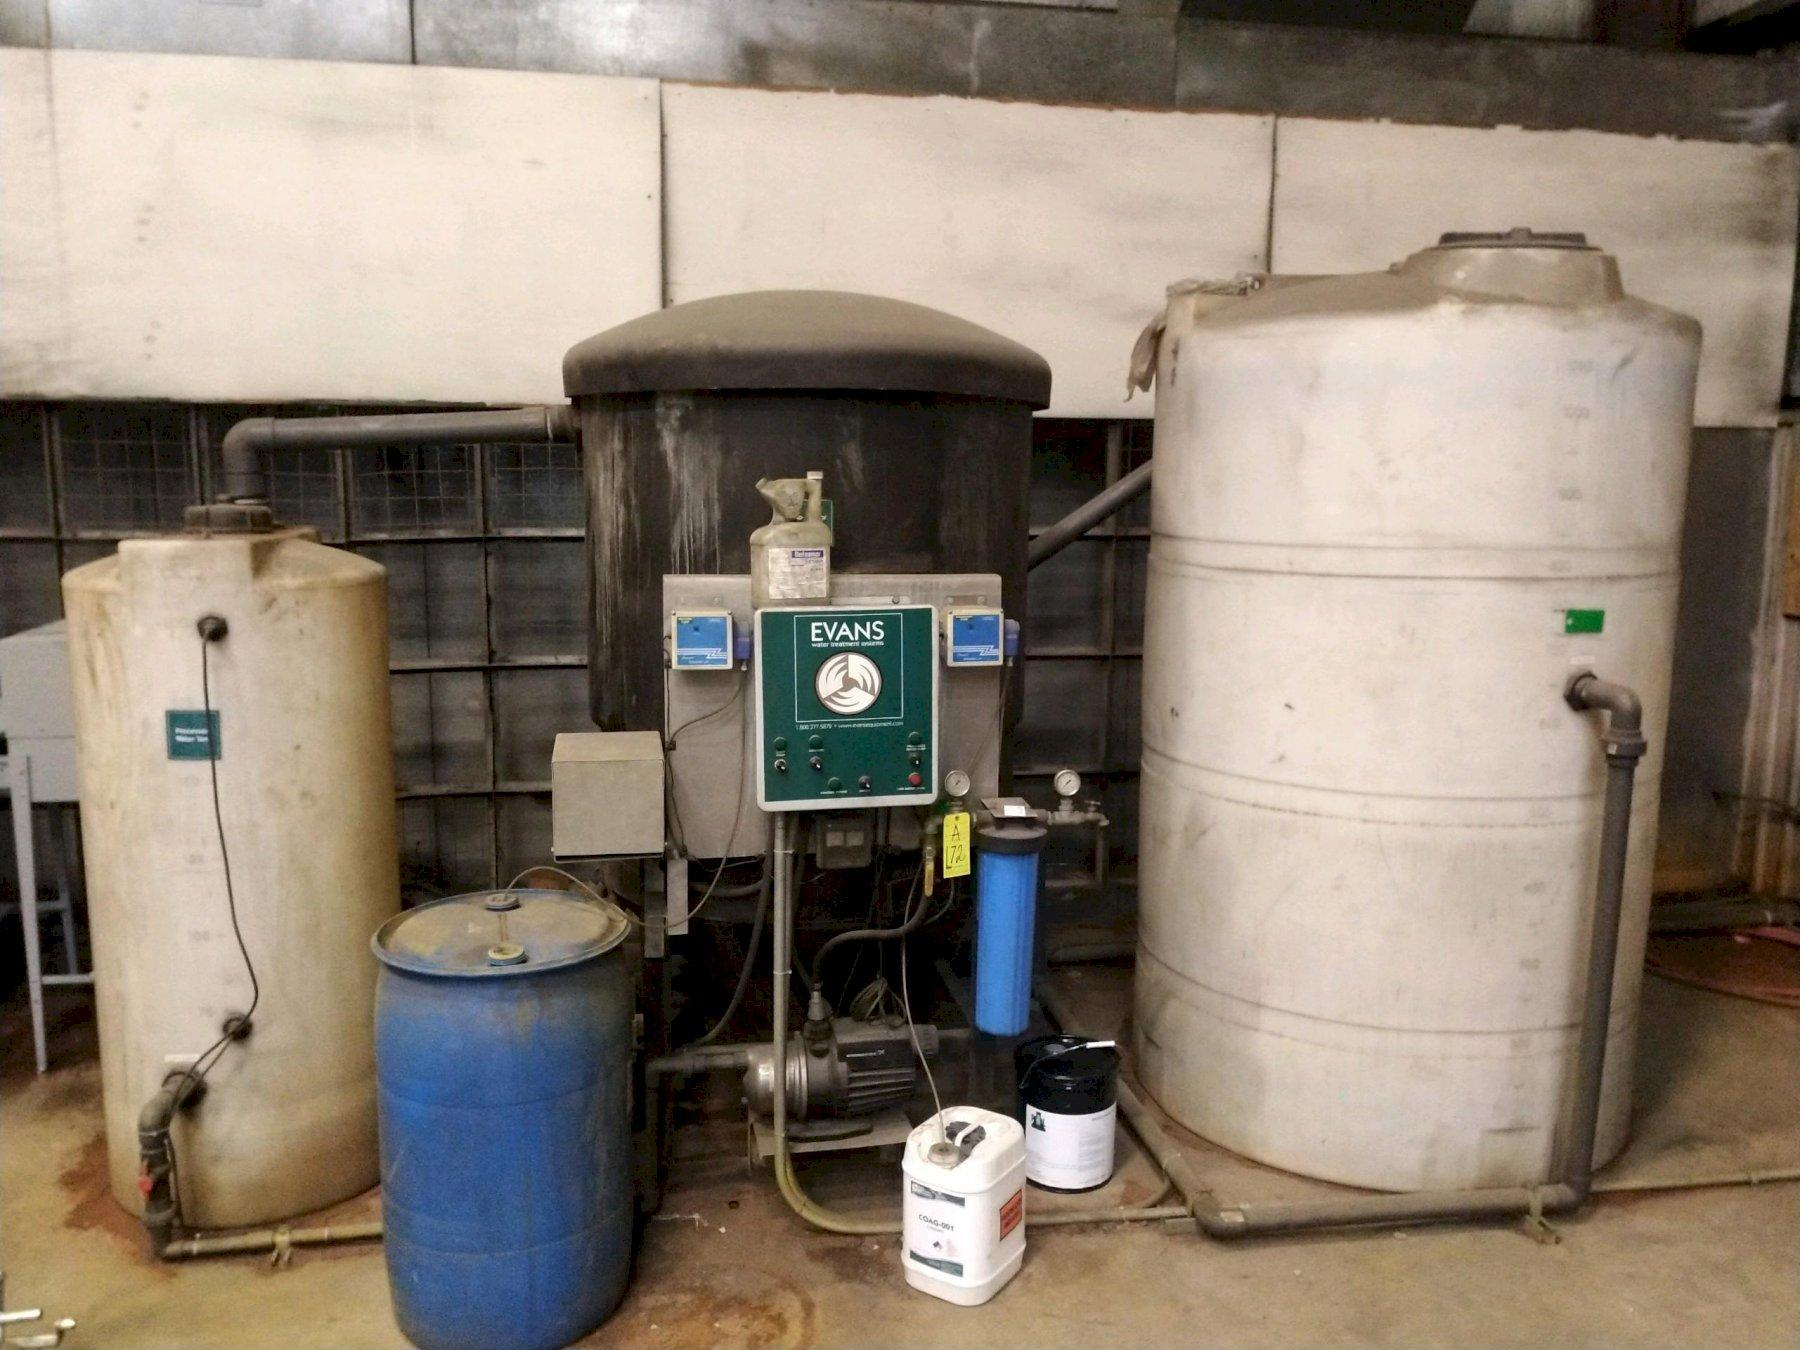 EVANS WATER TREATMENT SYSTEM: STOCK #12464